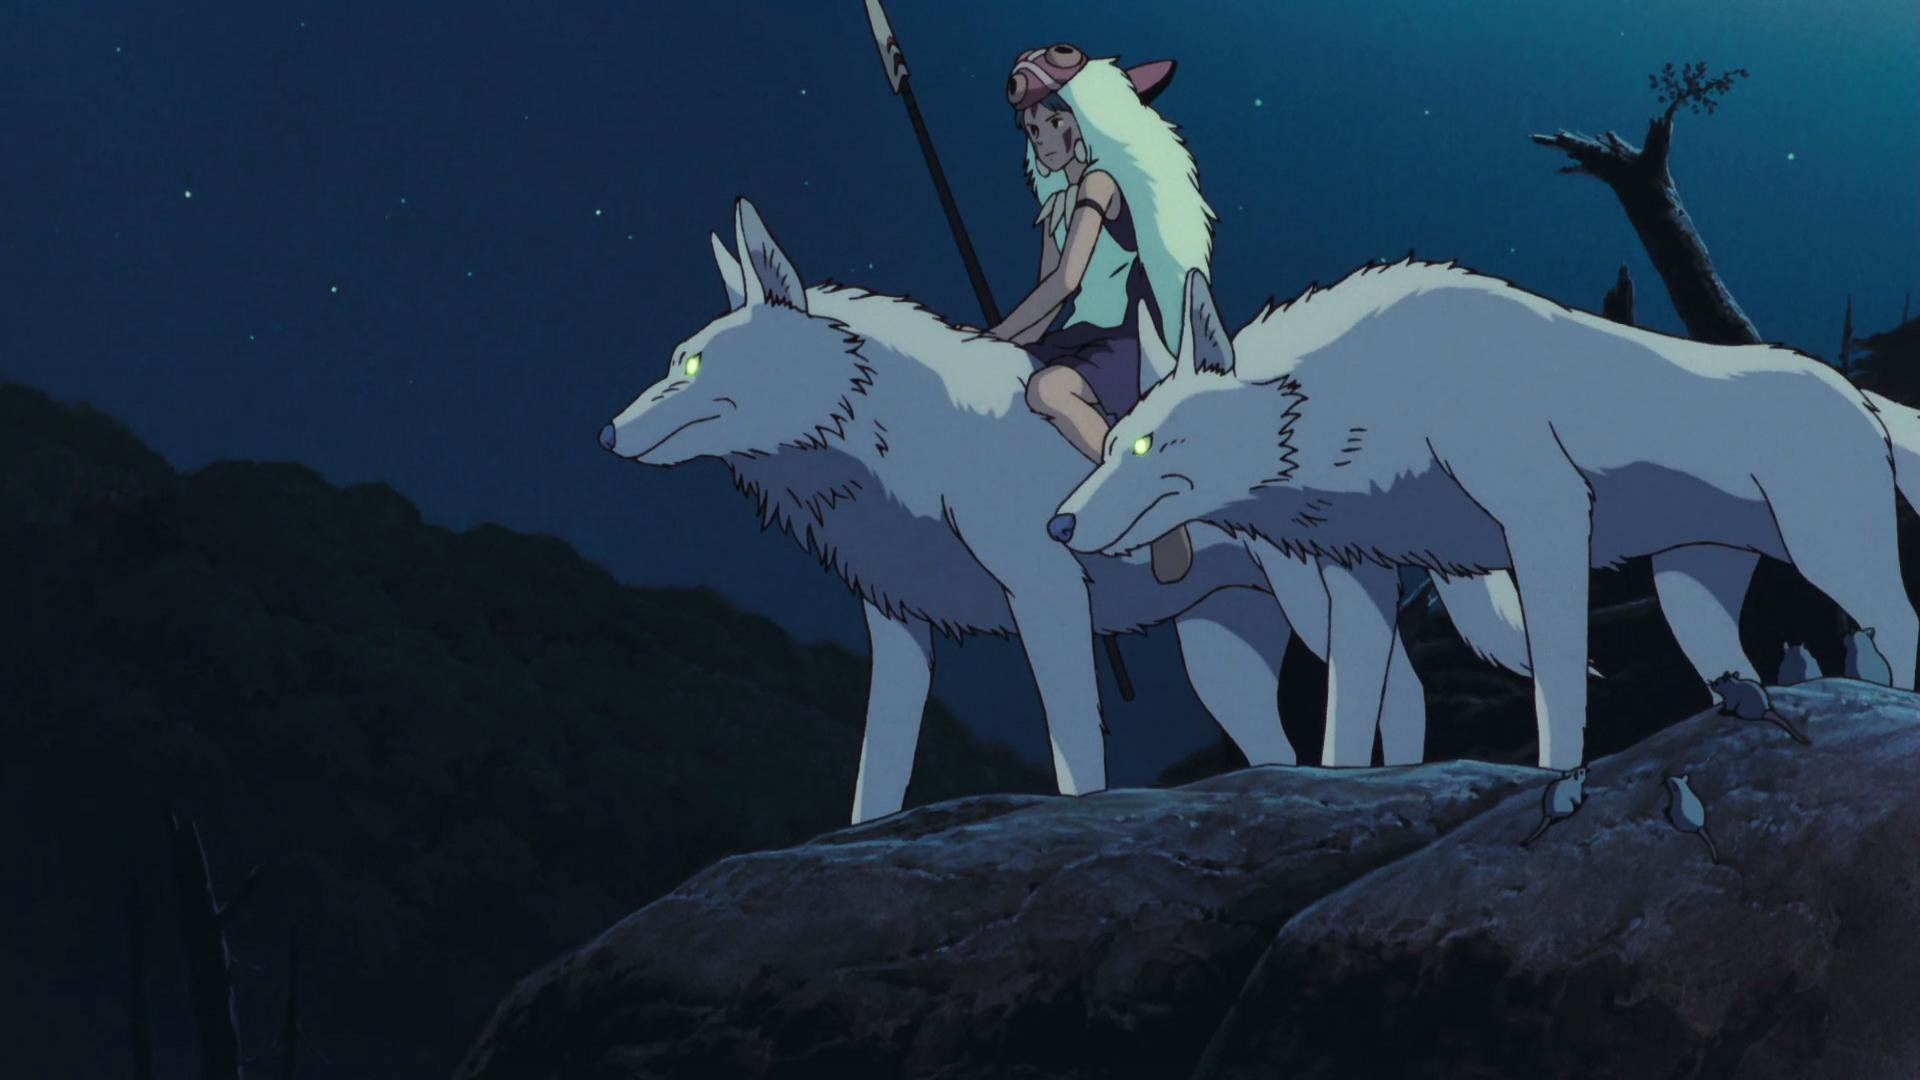 Free Download Princess Mononoke Wallpaper Id Princess Mononoke 431950 Hd Wallpaper Backgrounds Download